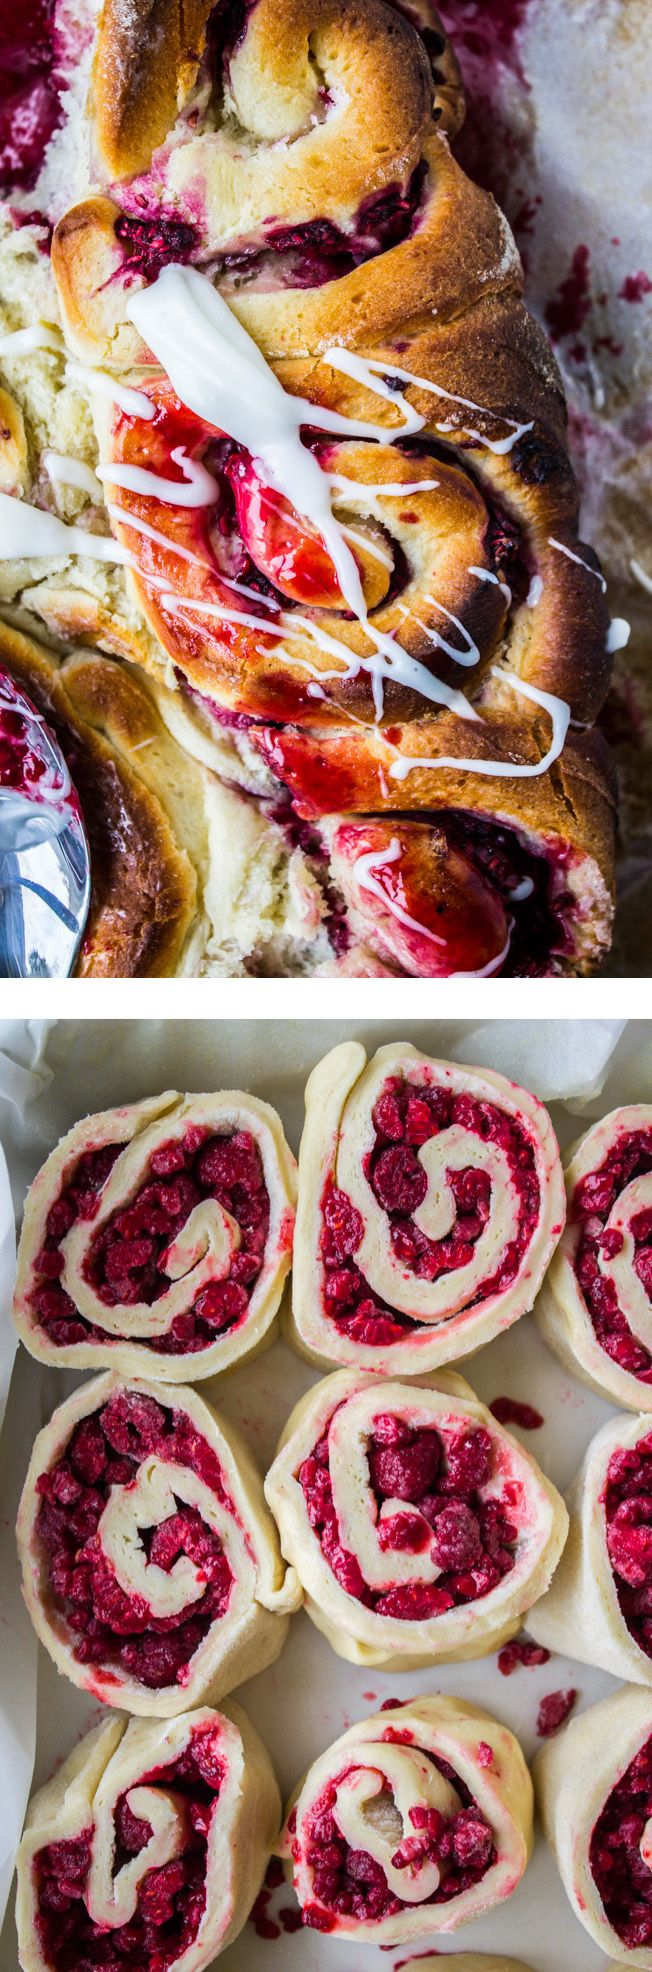 Raspberry Sweet Rolls with Coconut Cream Cheese Frosting from The Food Charlatan // These rolls will knock your socks off. The frosting is enough to make a man weep.